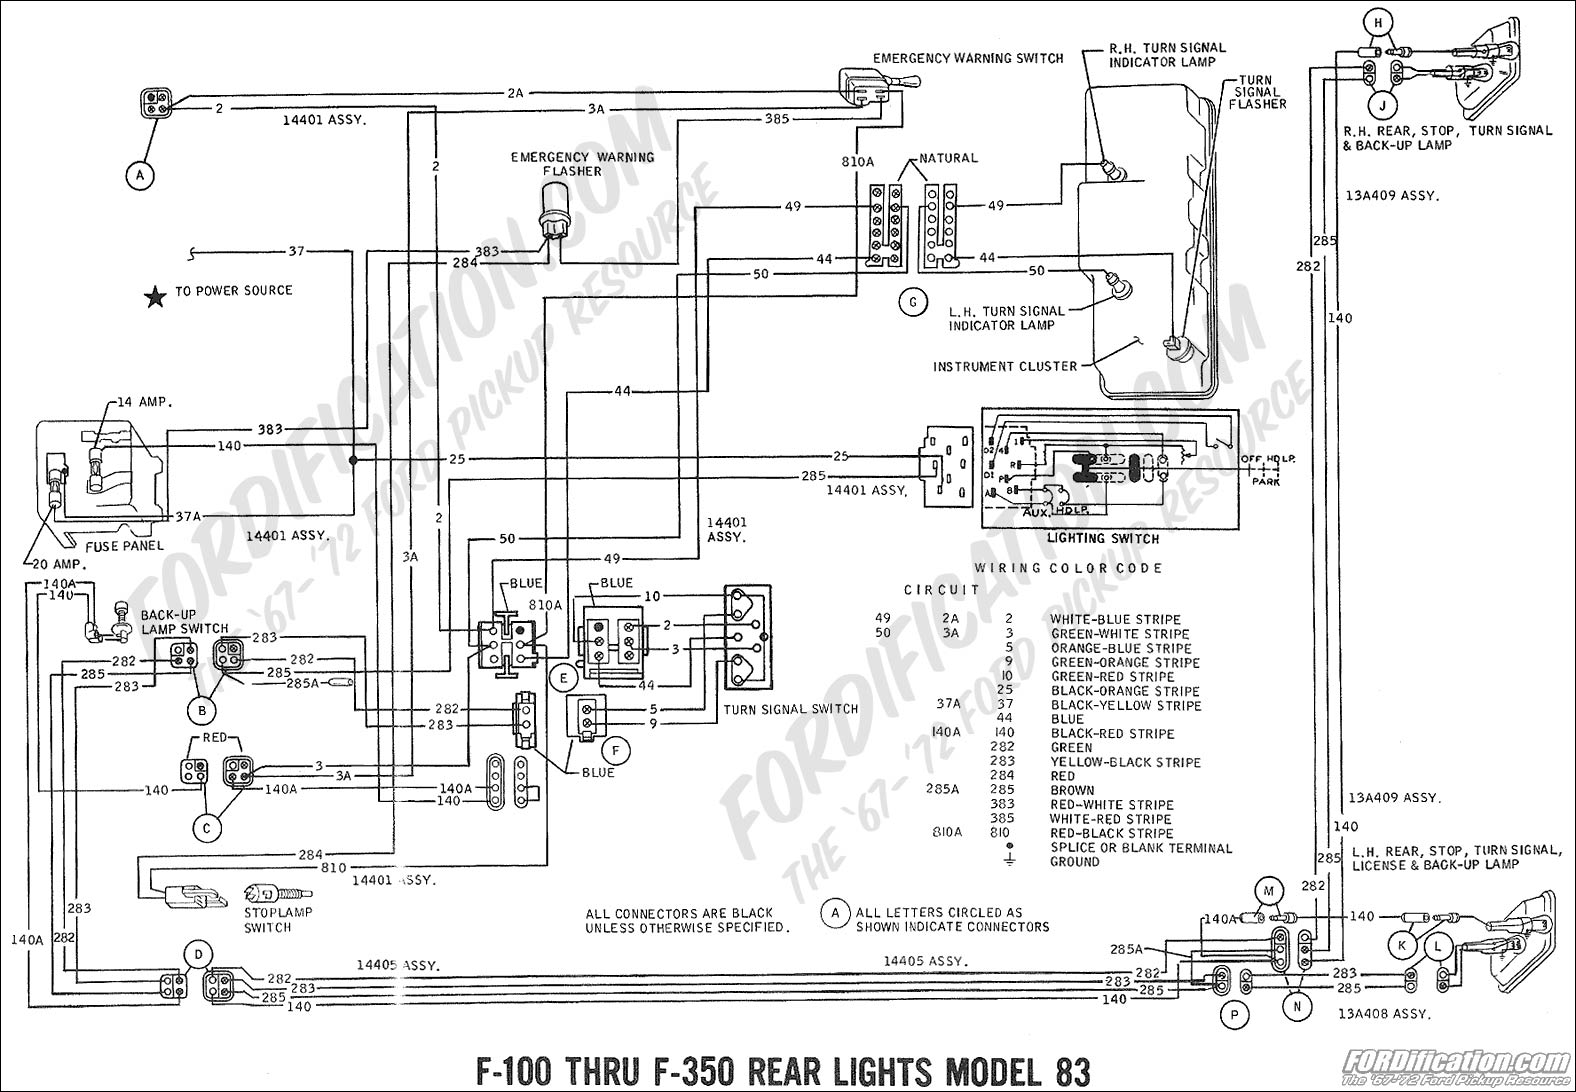 402792 Needed 89 Tercel Wiring Schematic Diagram 3e as well Jeep Cherokee 2 5 1988 Specs And Images also 46msd Ford F250 Pickup 4x4 1984 Ford F250 460cid 4x4 Need Wiring also 5l8jz 1999 Ford Ranger Xlt Hood The Park Tail Lights Dash Lights additionally 4i0a1 Chevrolet S10 4x2 1995 Chevy S10 Pickup 4cyl Cannot. on 99 chevy pickup headlight wiring diagram